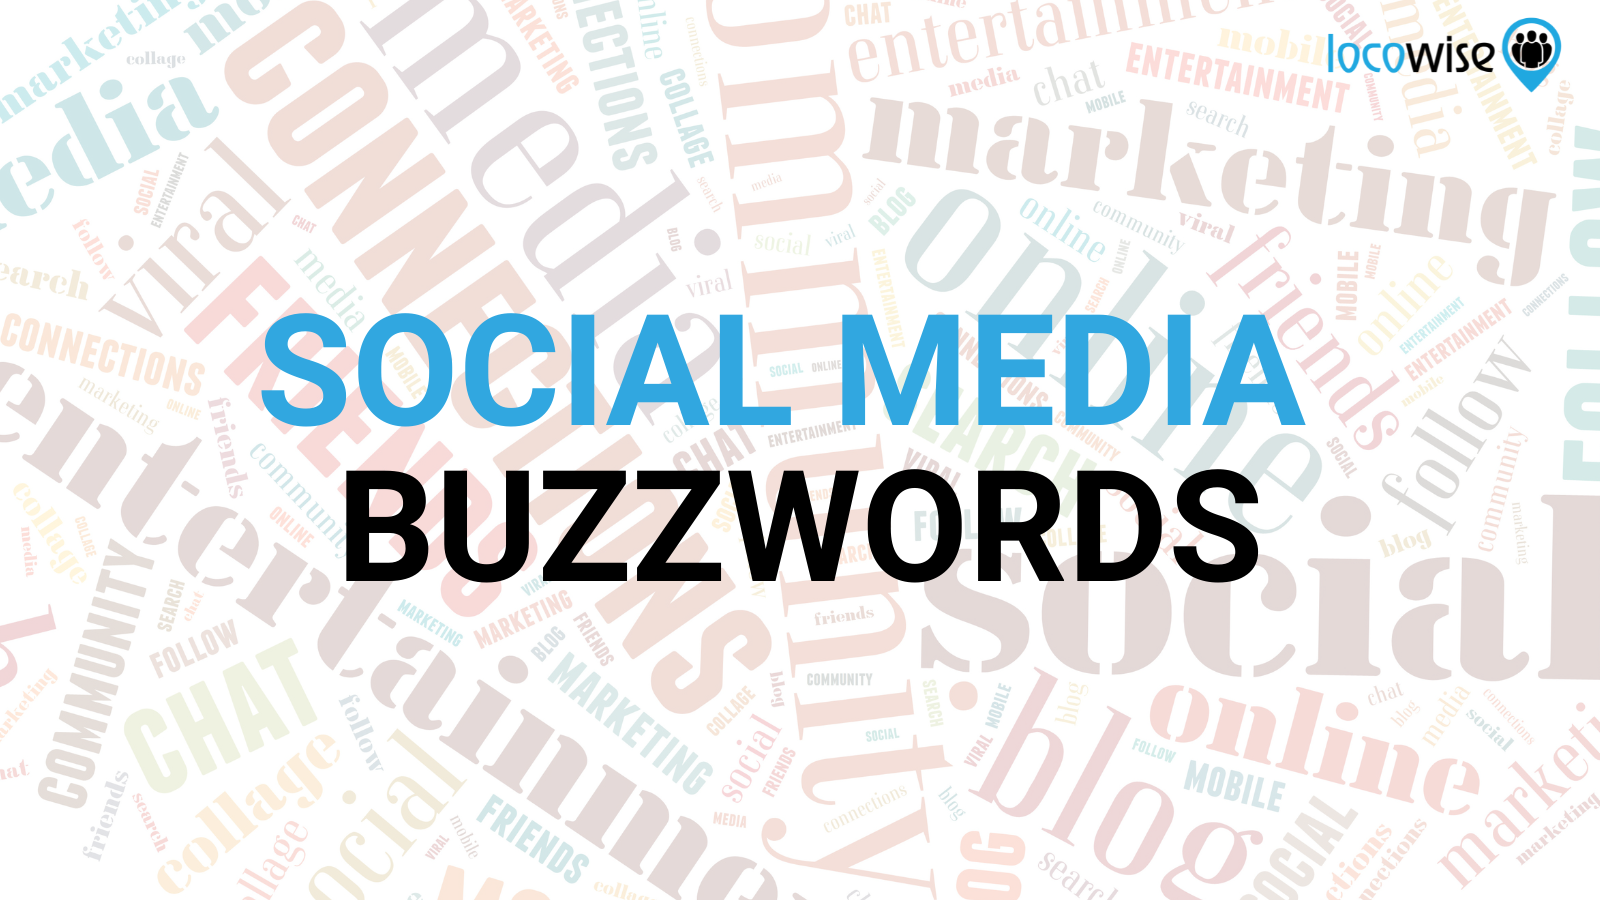 New to Social Media? Here Are the Top Buzzwords You'll Hear